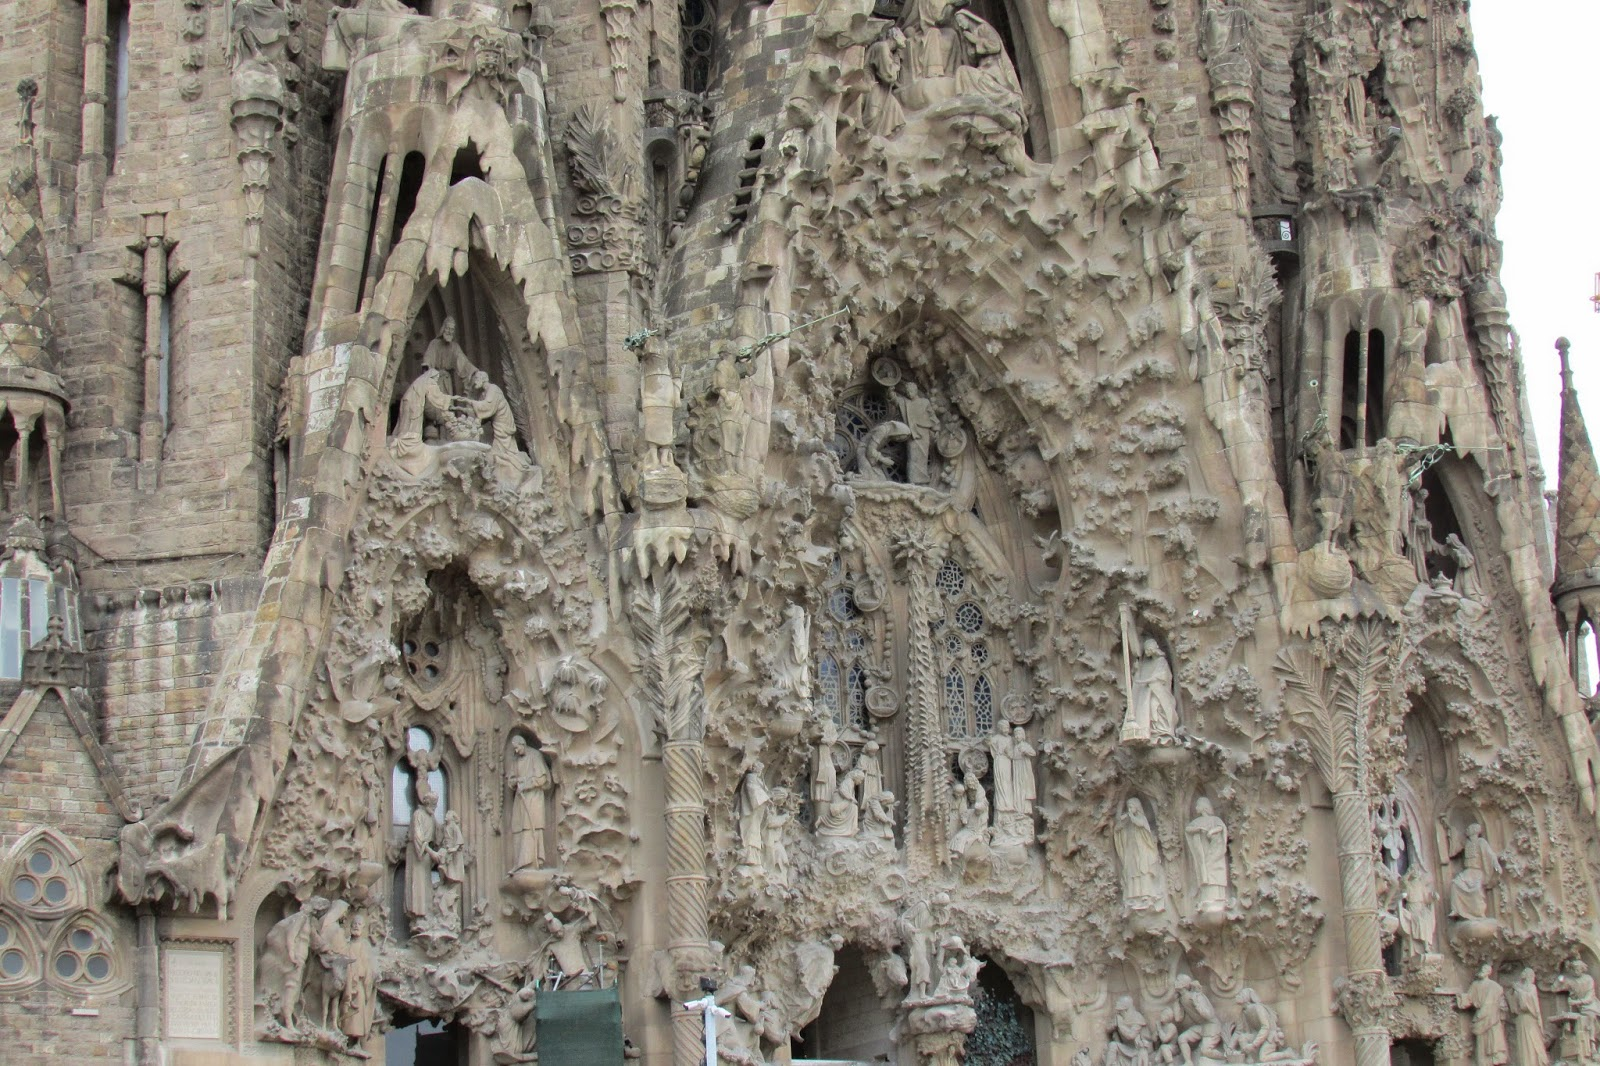 la sagrada familia finished